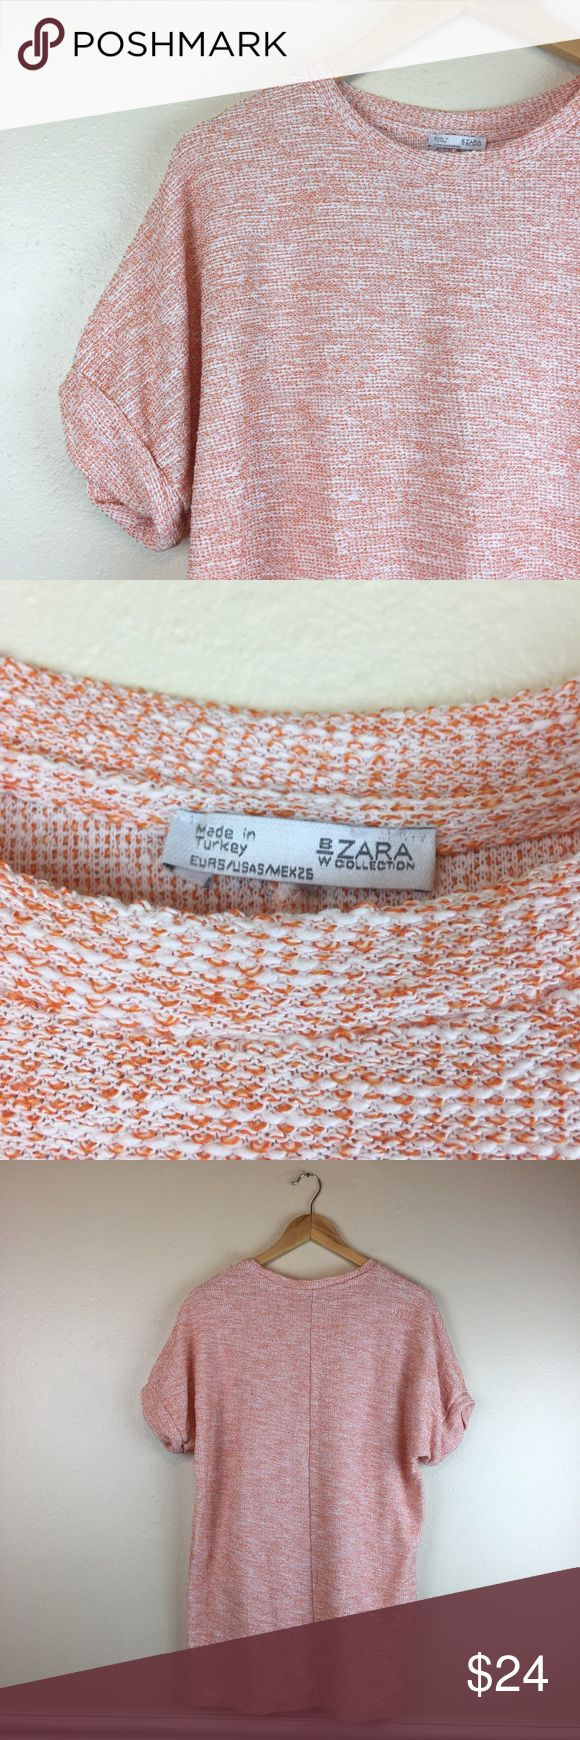 """Zara Women's Short Sleeve Top Orange Size Small Zara short sleeve women's top, size small. Fits like oversized tee.  Measurements:  Bust - 22"""" armpit to armpit laying flat Length - 30"""" taken from back of garment, top to bottom   Great Pre Loved Condition! storage code: E38 Zara Tops Tees - Short Sleeve"""